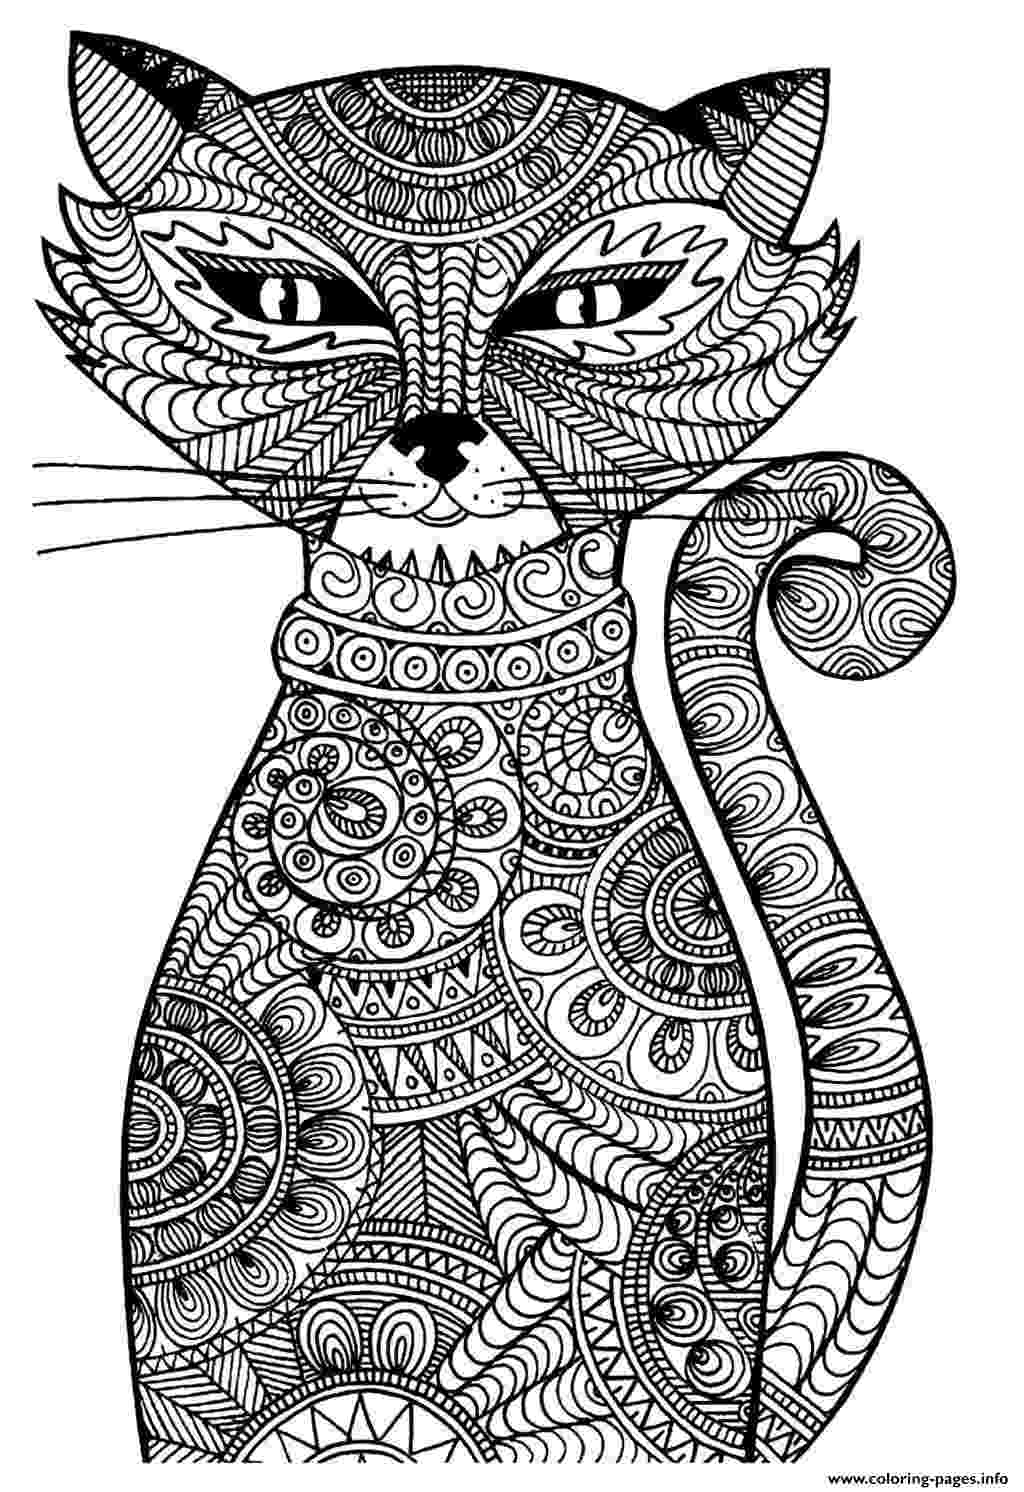 free online coloring pages for adults cats adult coloring cats 14088 bestofcoloringcom more to online for free adults coloring cats pages